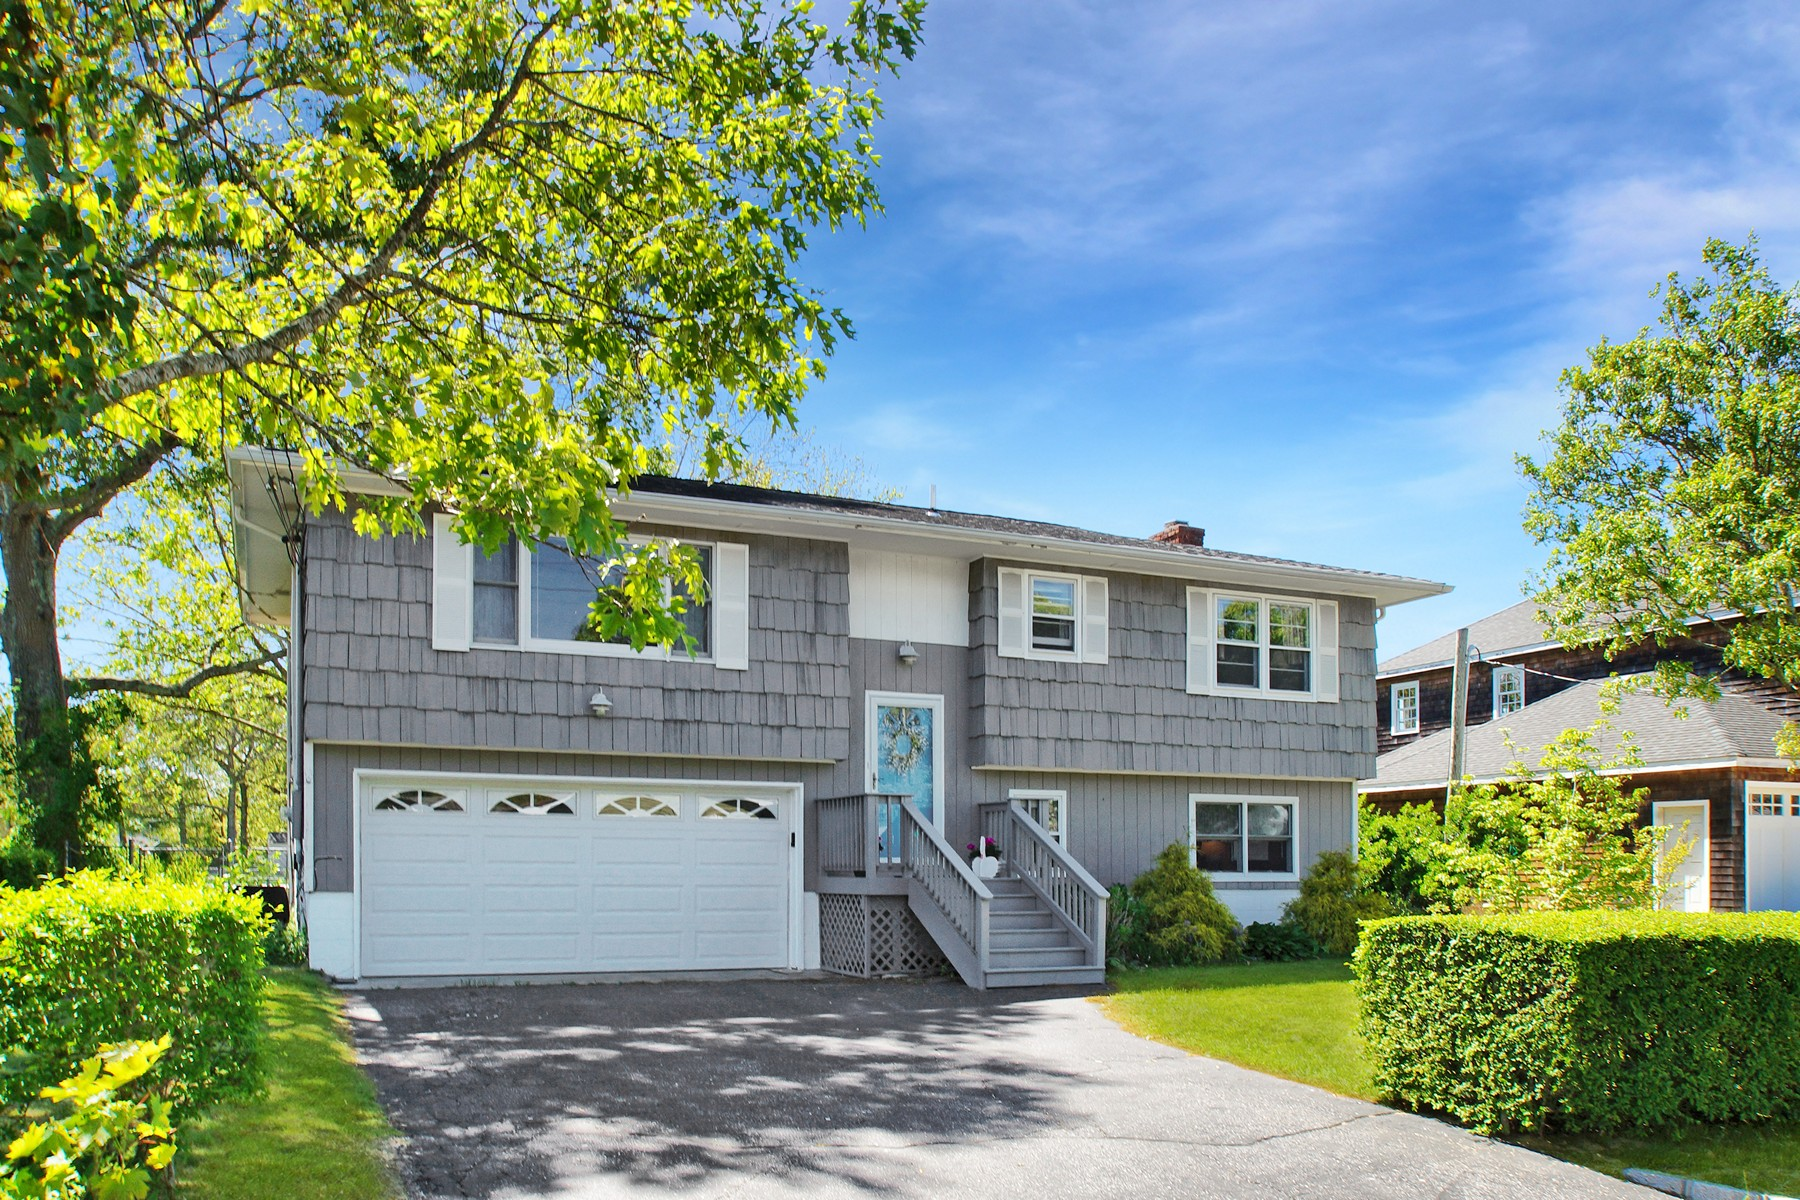 Single Family Homes for Sale at Flanders 185 Long Neck Blvd Flanders, New York 11901 United States